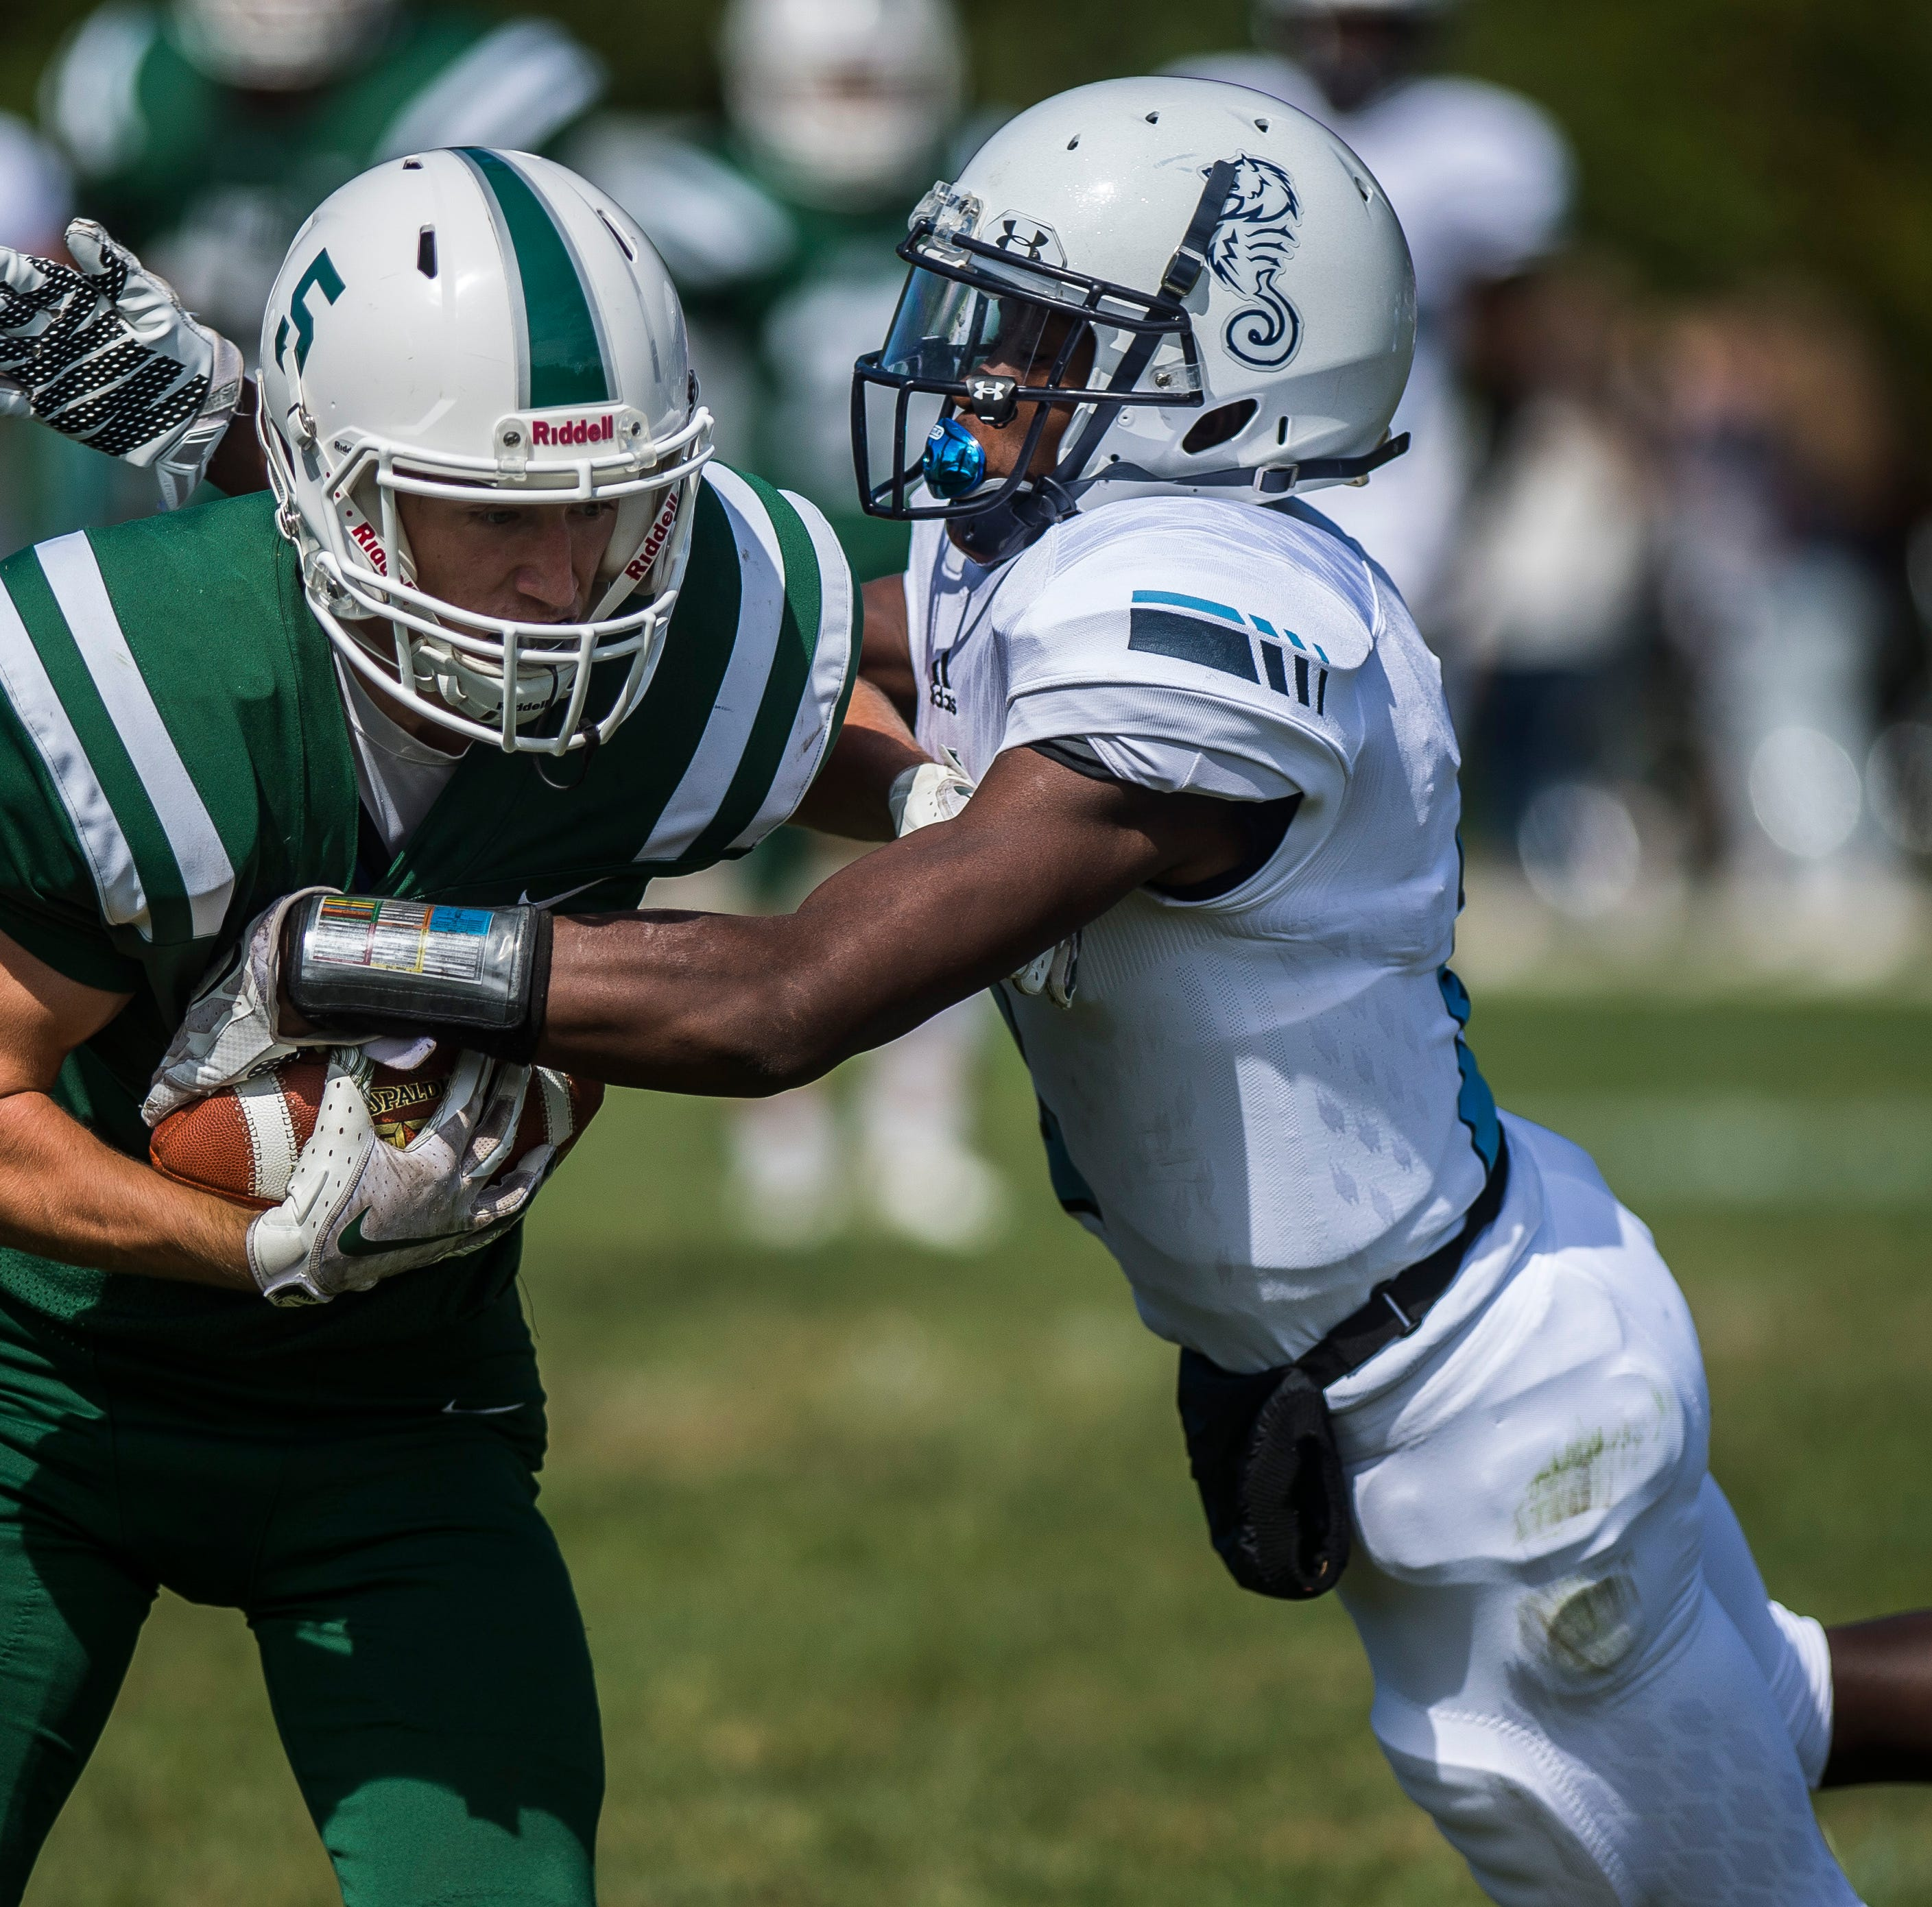 Rice #5 Andrew Snell gets caught by Seawolves #2 Bassiru Diawara during their high school football matchup against Rice on Saturday, Sept. 8, 2018, in South Burlington. Rice won 8-6.